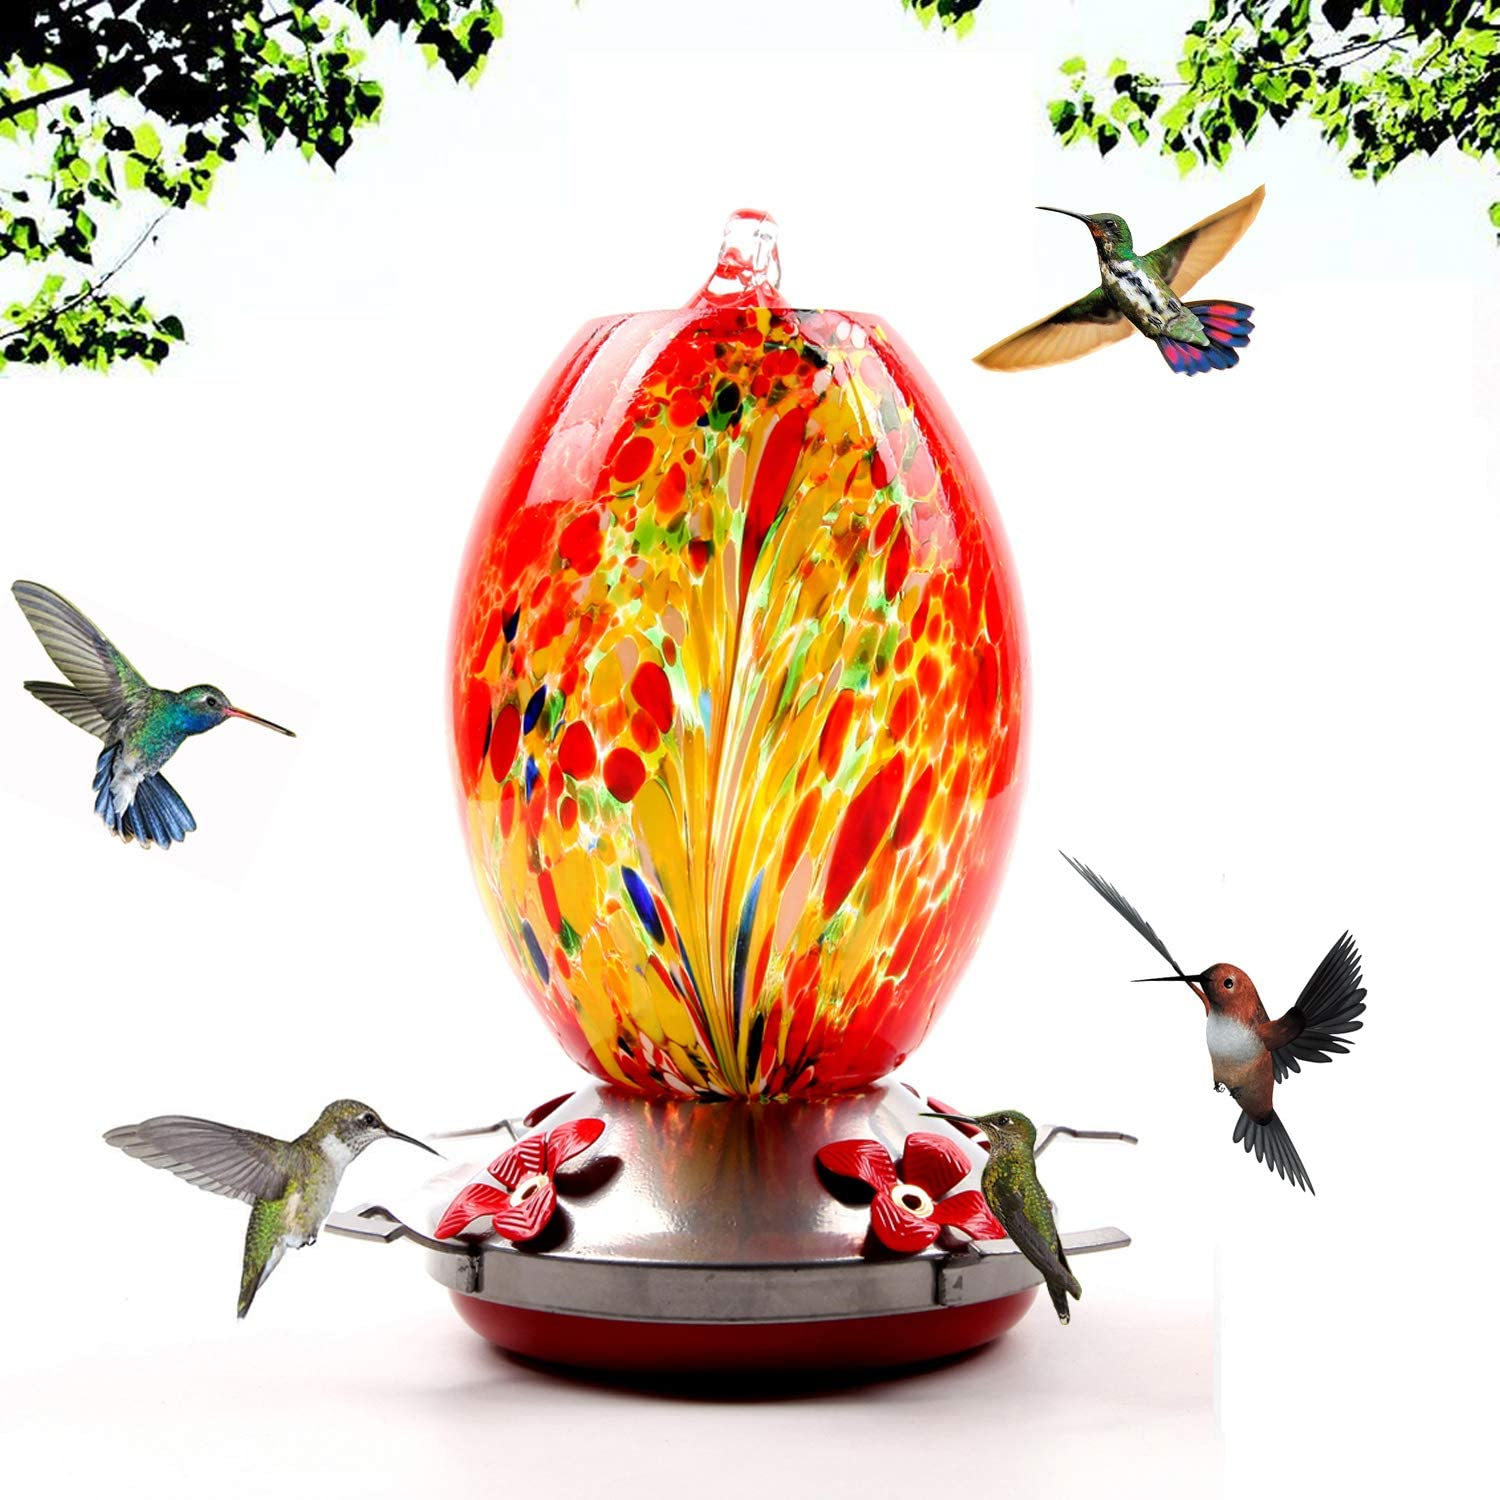 Garden Hummingbird Feeder with Perch - Hand Blown Glass - Blue - 25 Fluid Ounces Hummingbird Nectar Capacity Include Hanging Wires and Moat Hook (Red Phoenix)